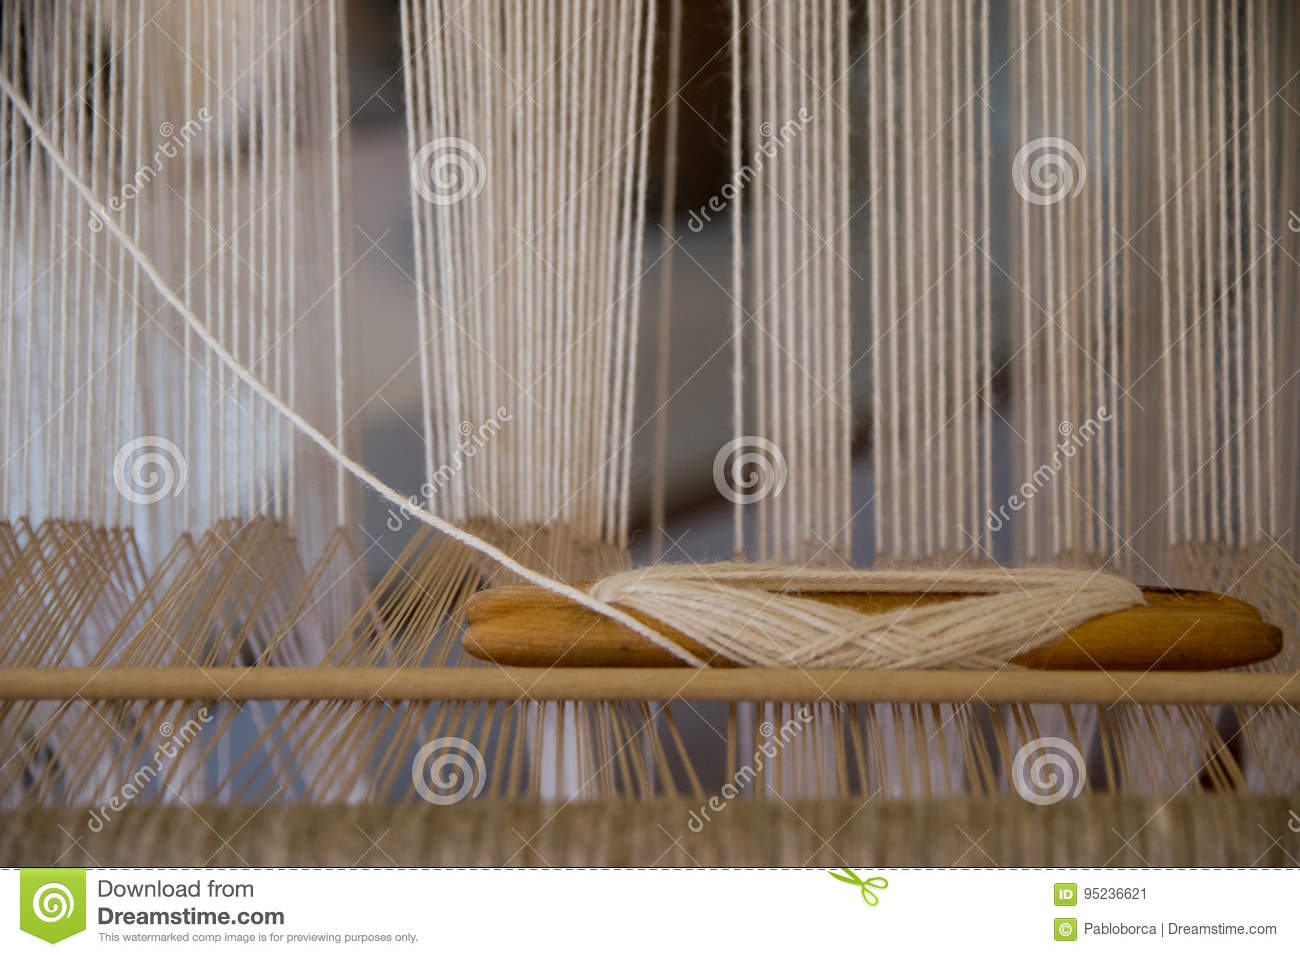 Detail of a hand loom